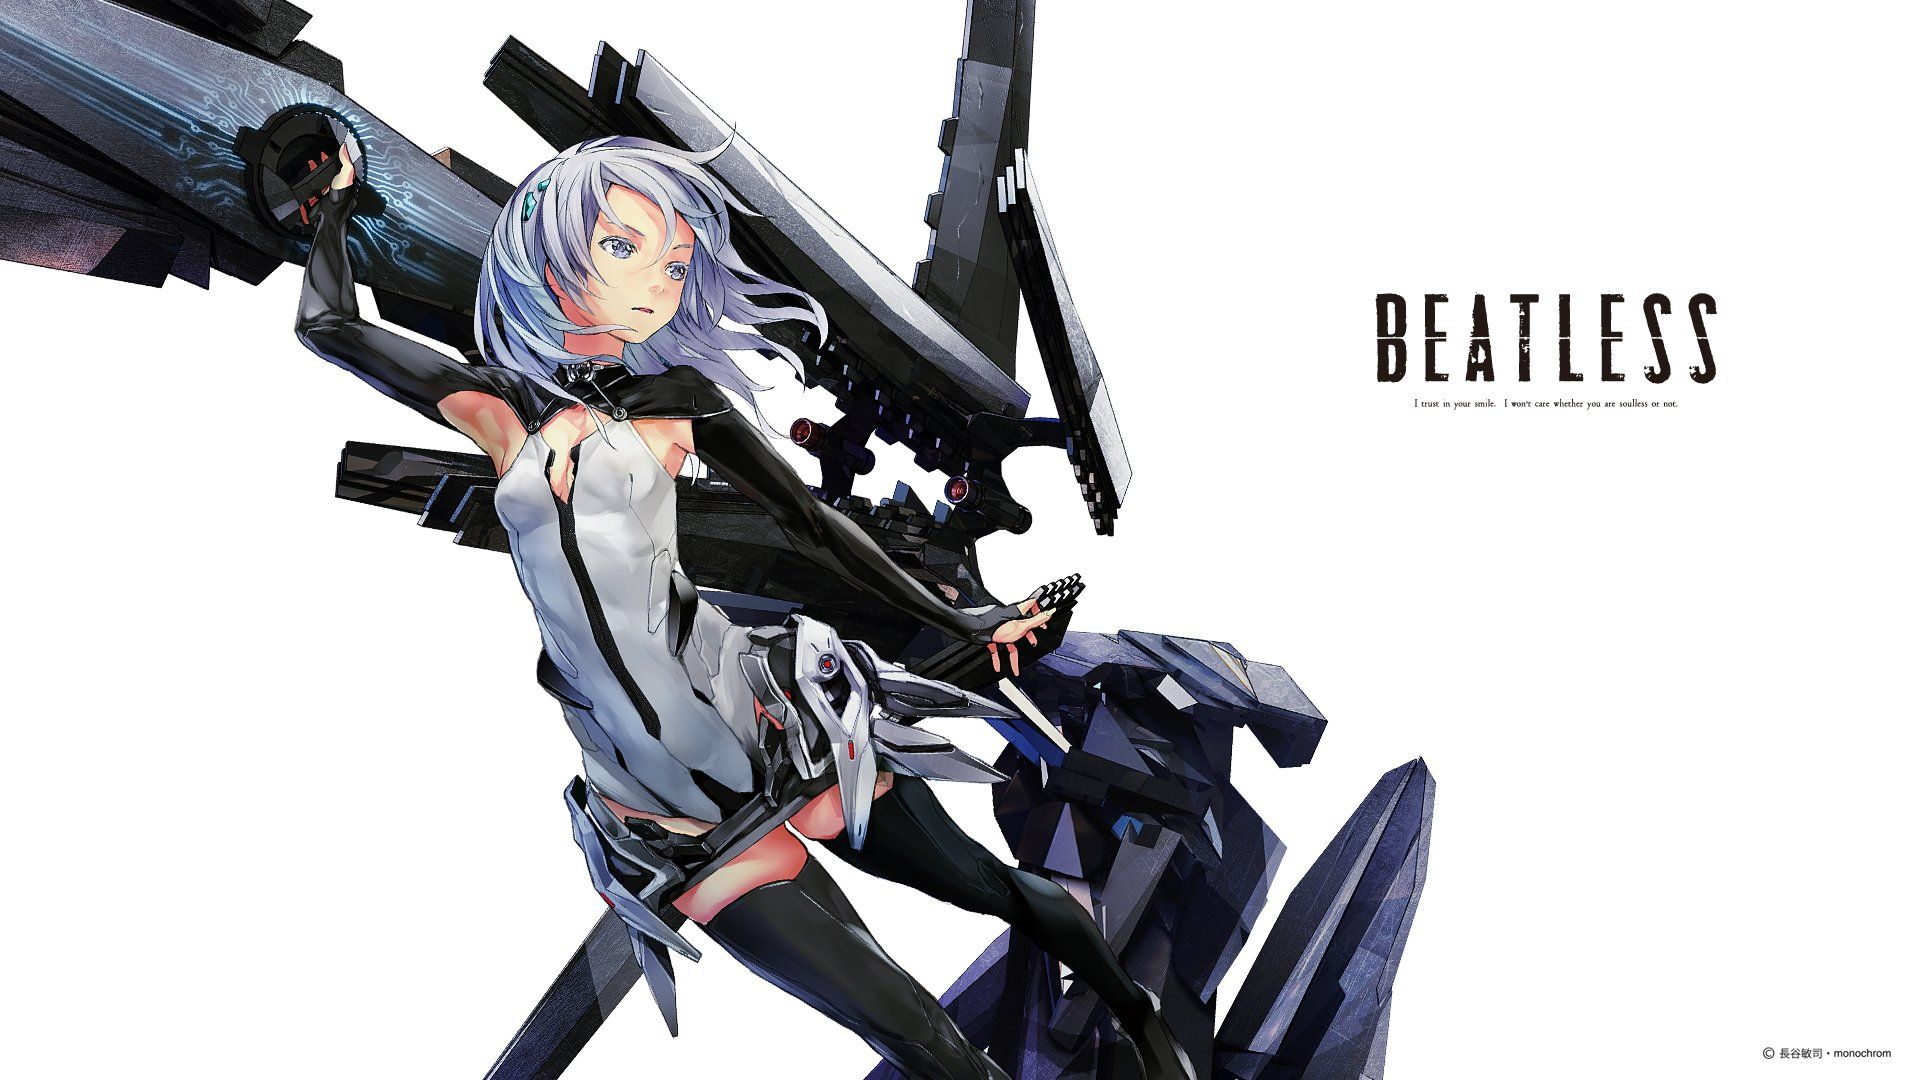 Anime Beatless Wallpaper アニメ